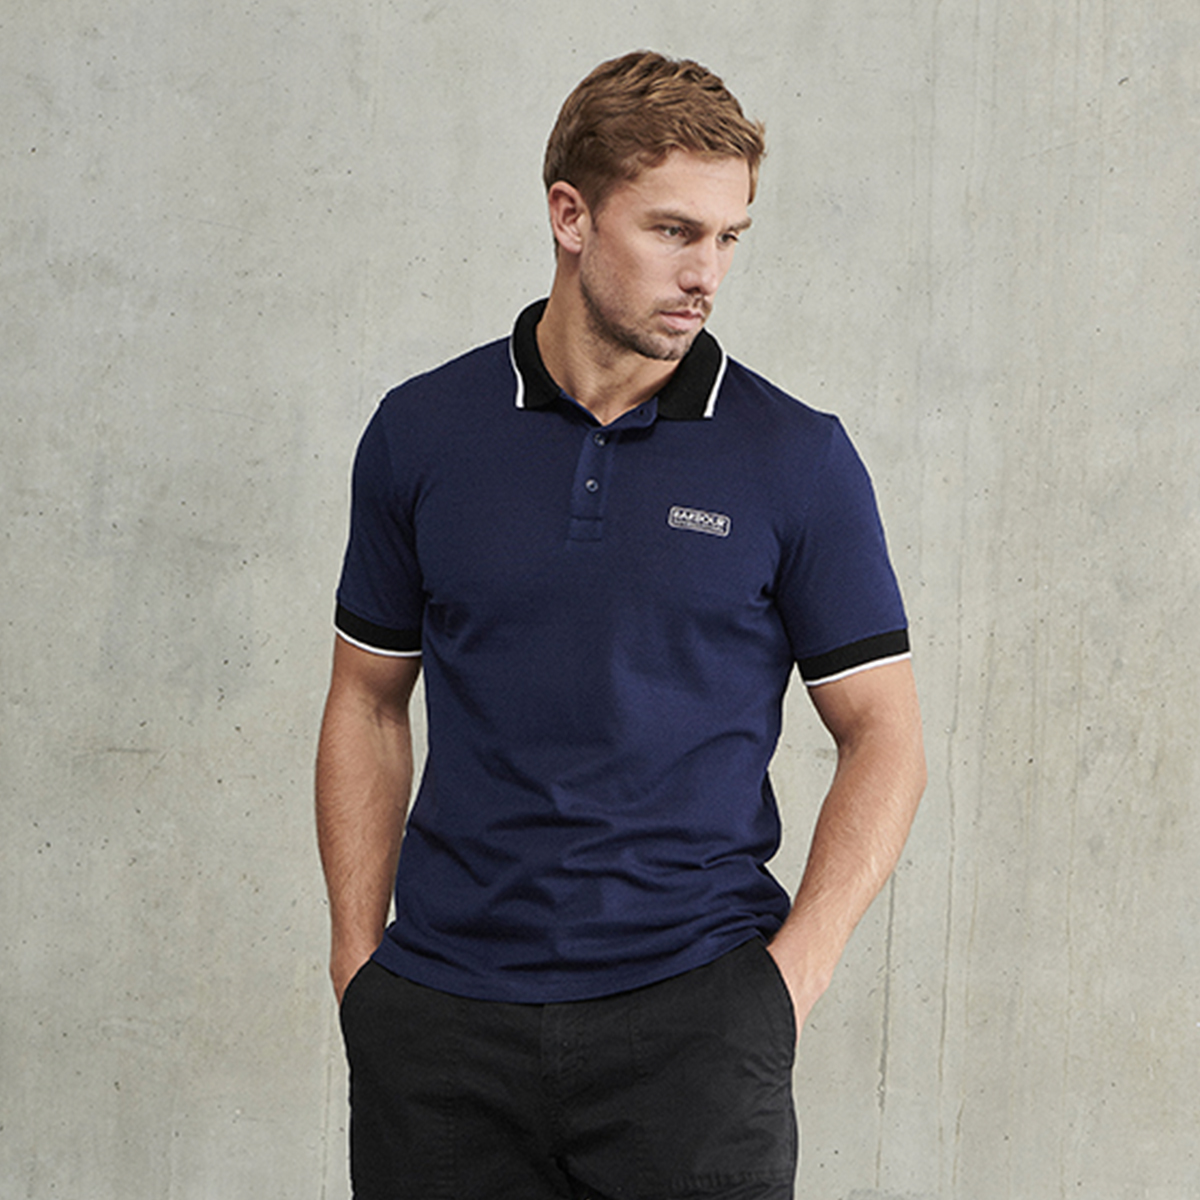 A man wearing a Barbour International polo shirt standing with his hands in his pockets